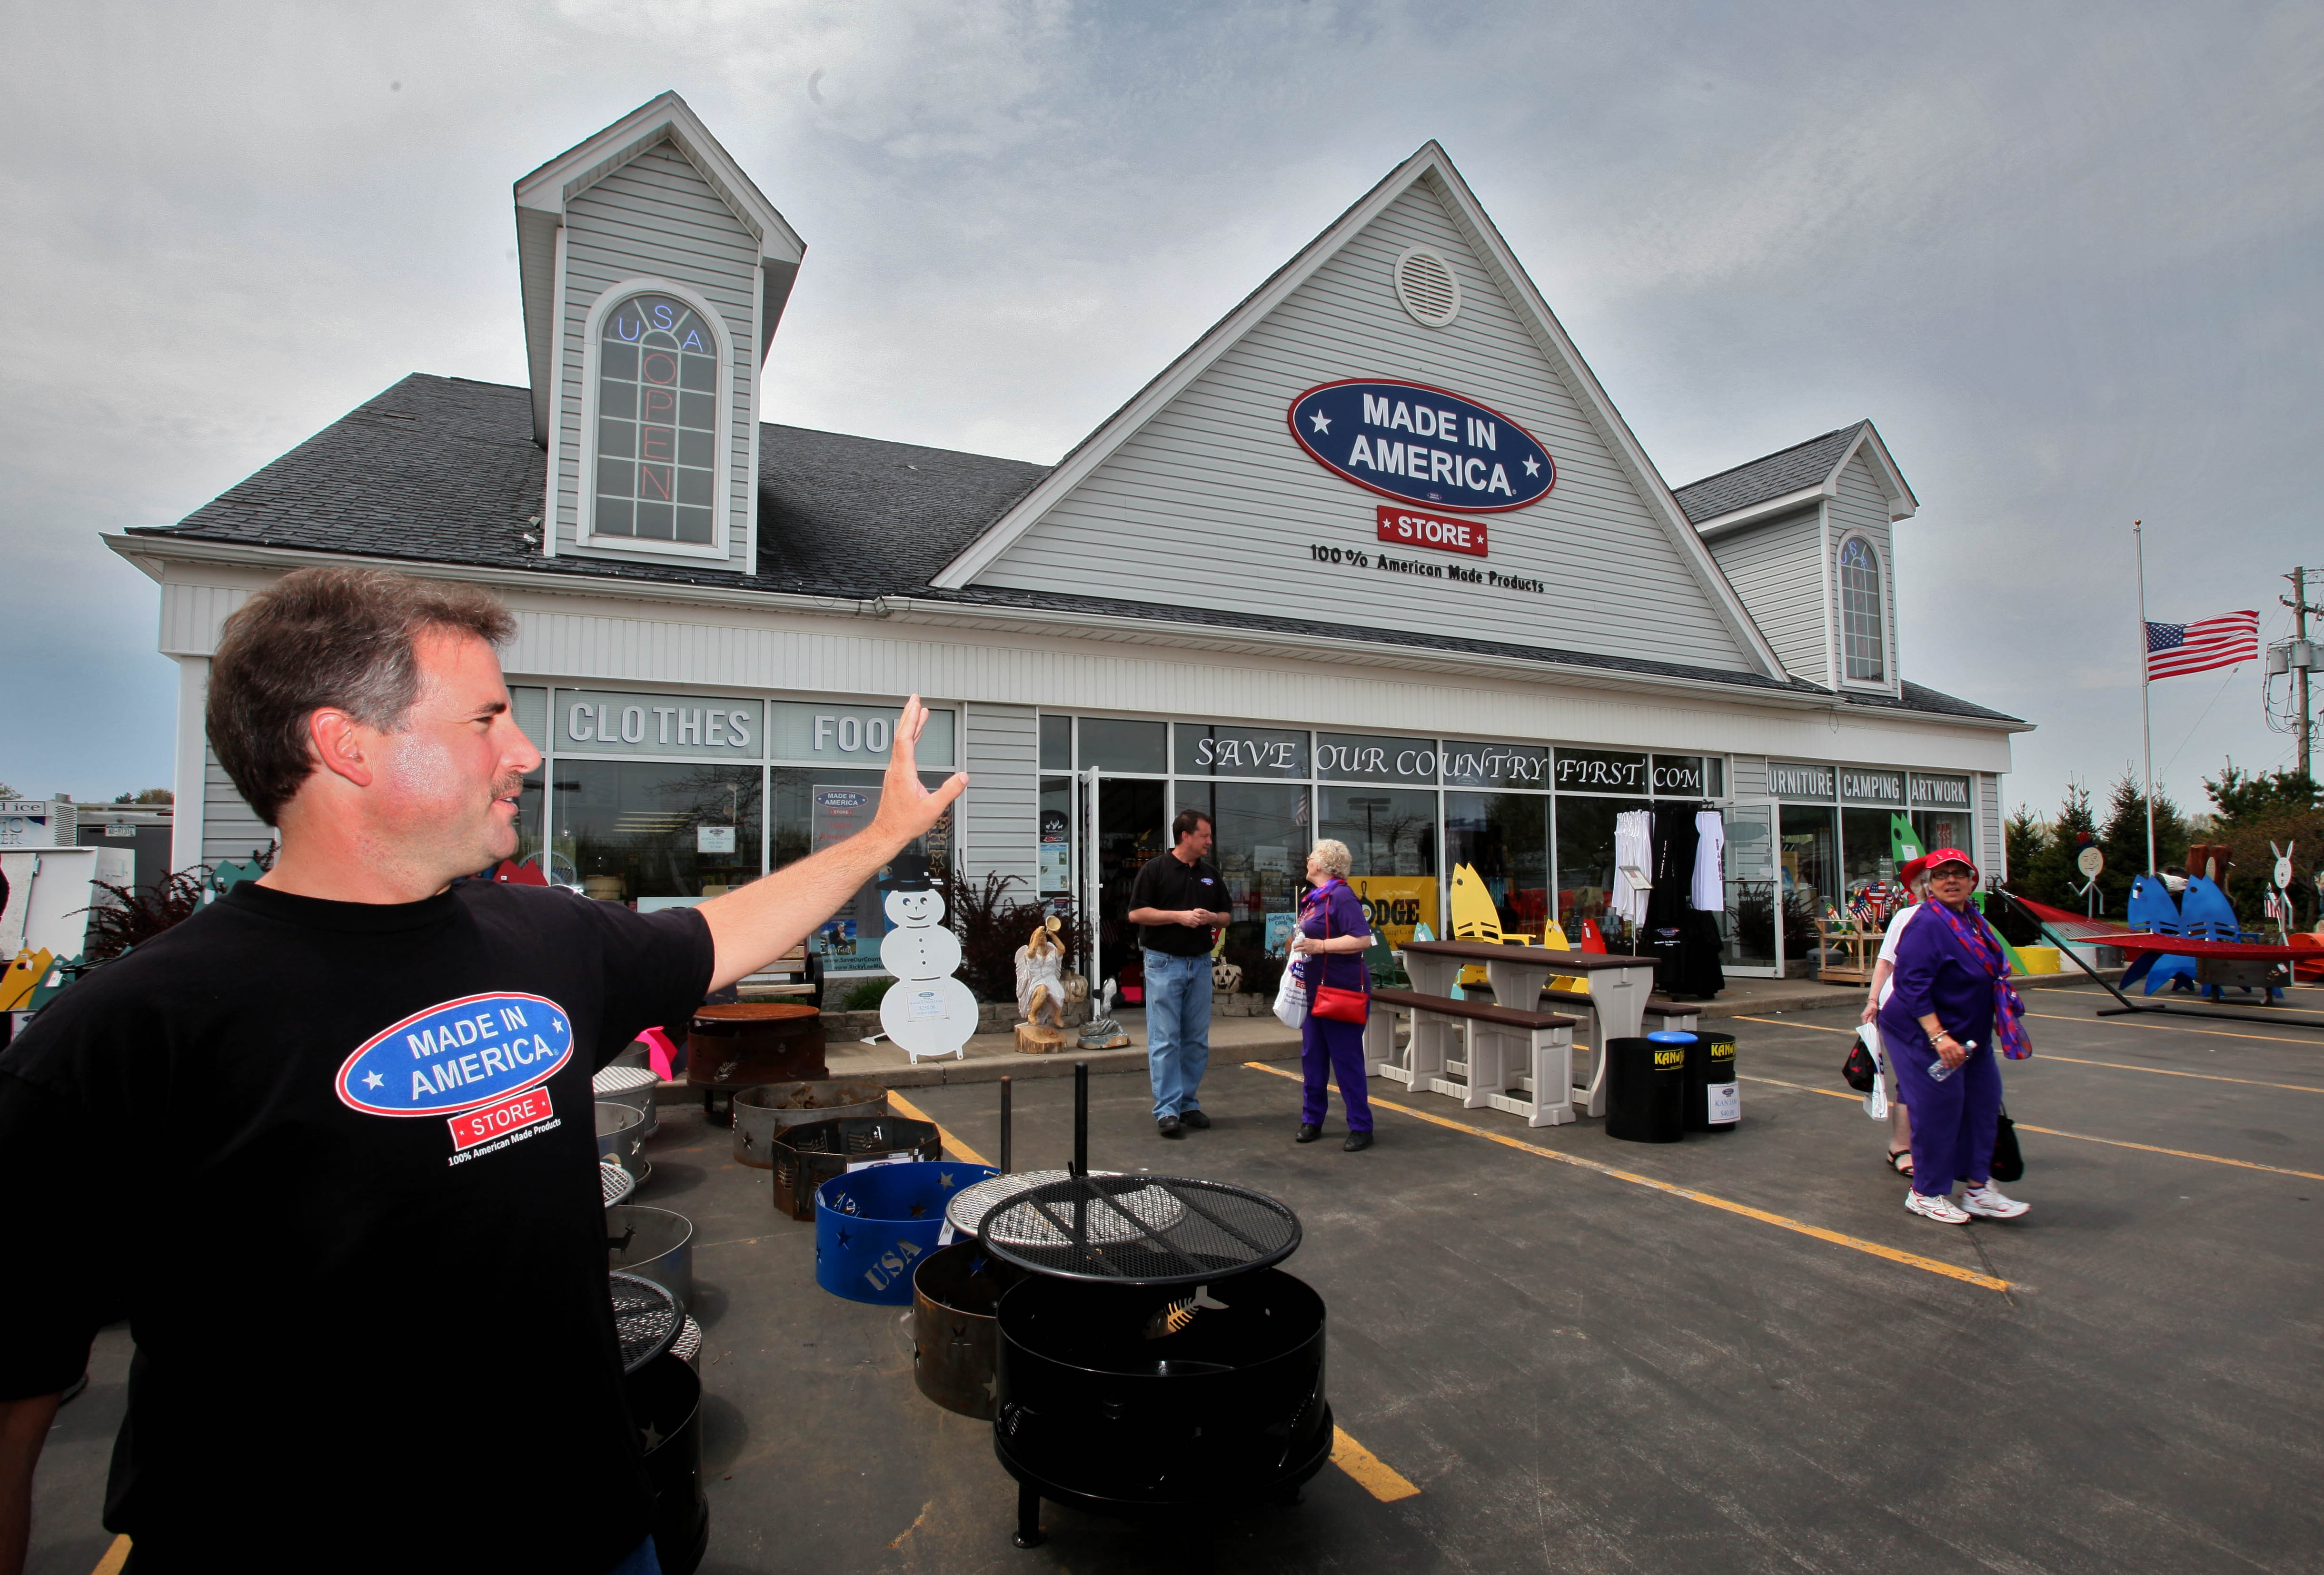 Mark Andol's Made in America Store in Elma has been expanded to three times its original square footage, seen here in a photo from 2011.